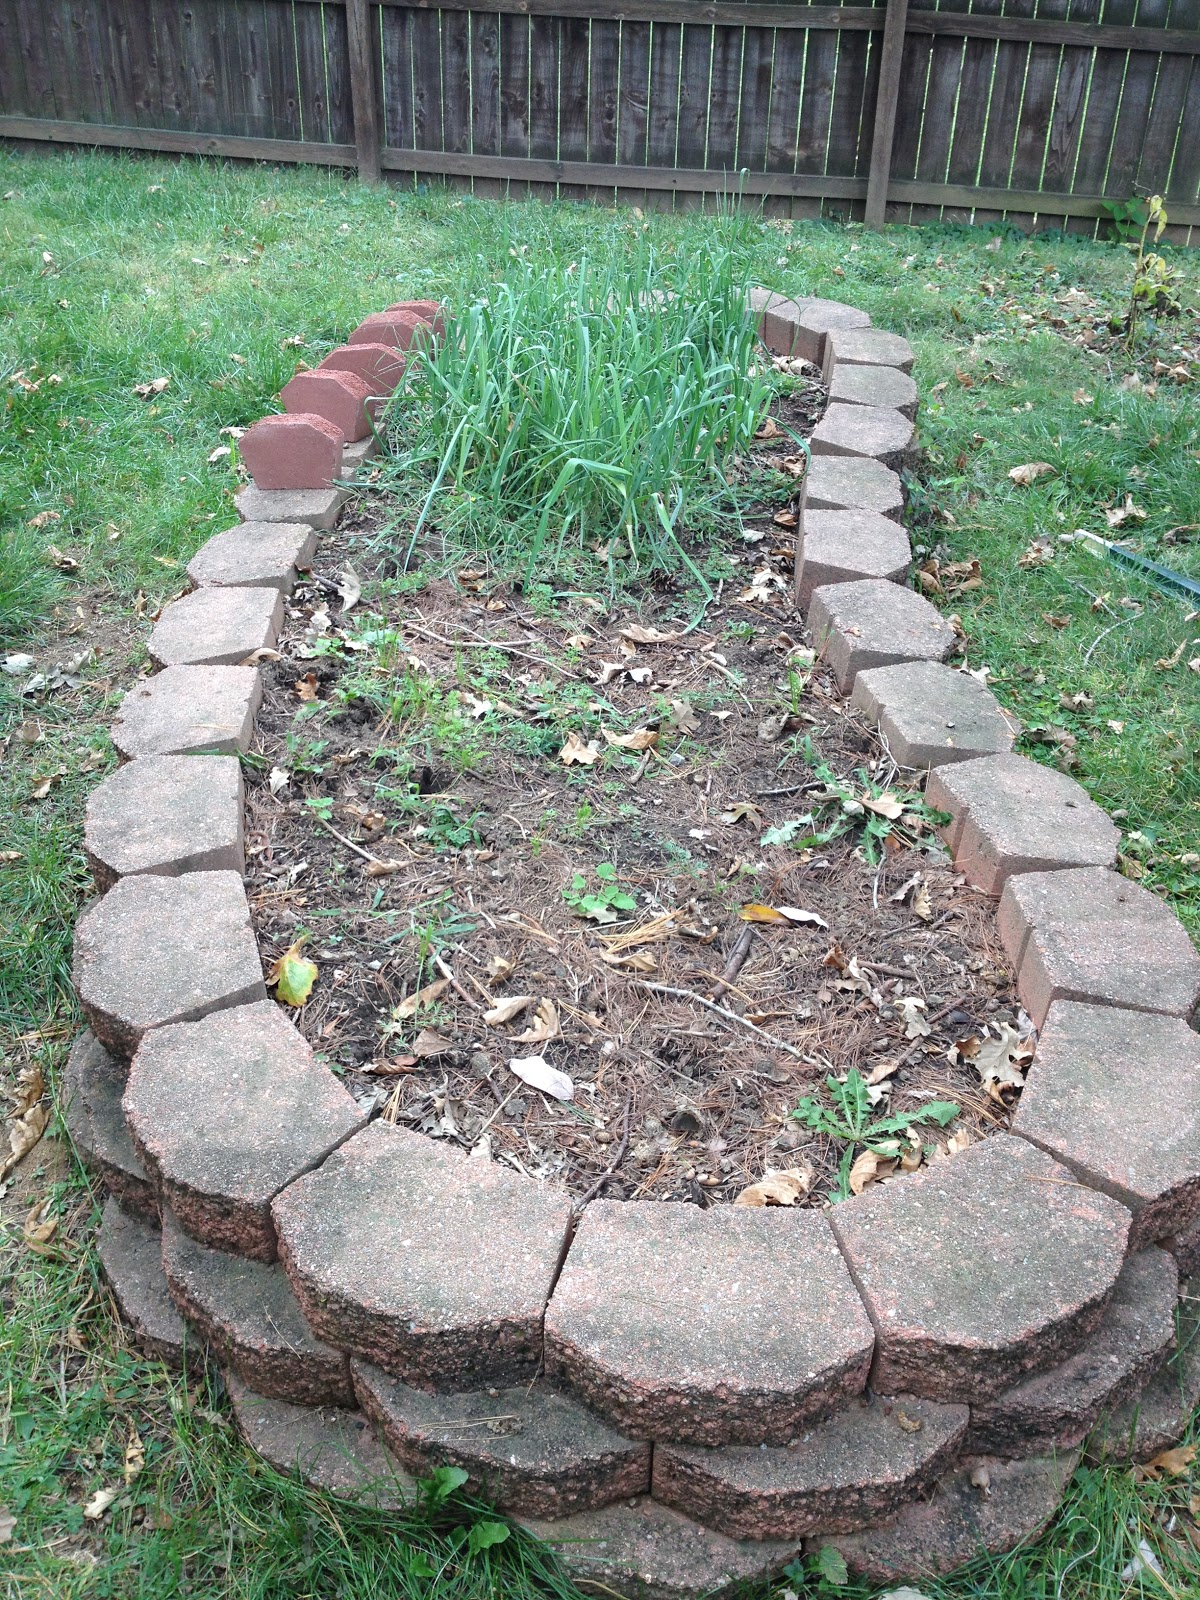 Landscaping Bricks : Fast cheap and good sustainability one choice at a